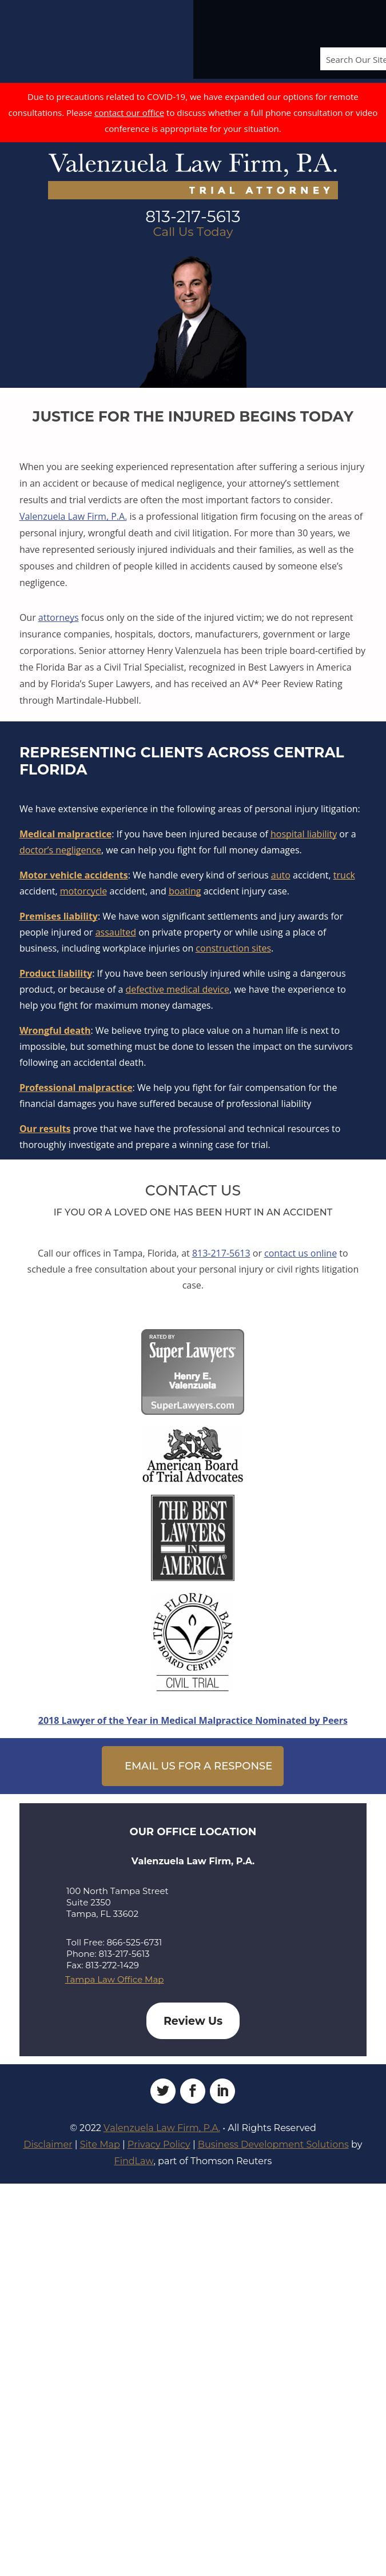 Valenzuela Law Firm, P.A. - Tampa FL Lawyers